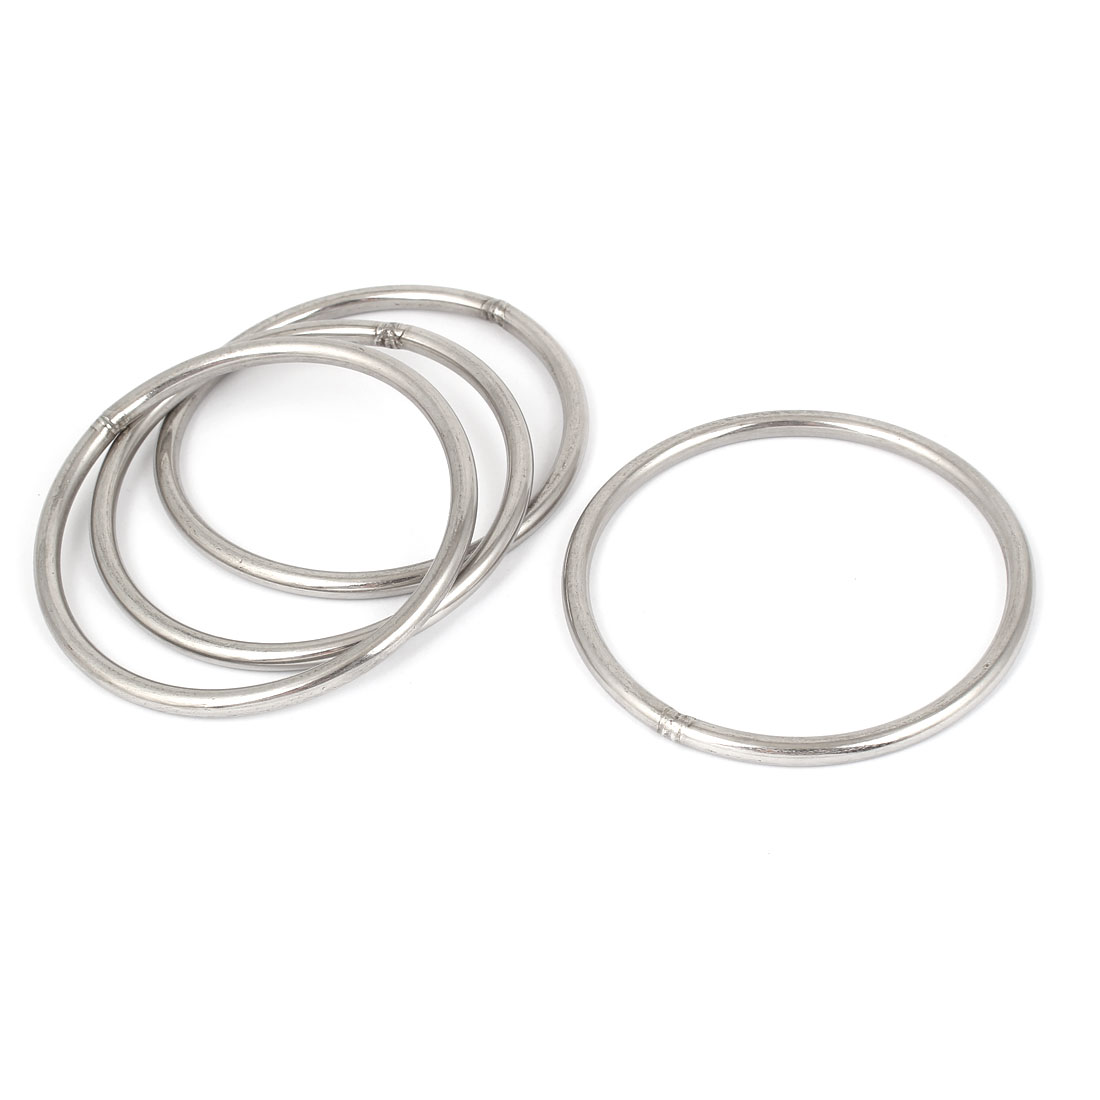 M6 x 100mm 201 Stainless Steel Strapping Welded Round O Rings 4 Pcs